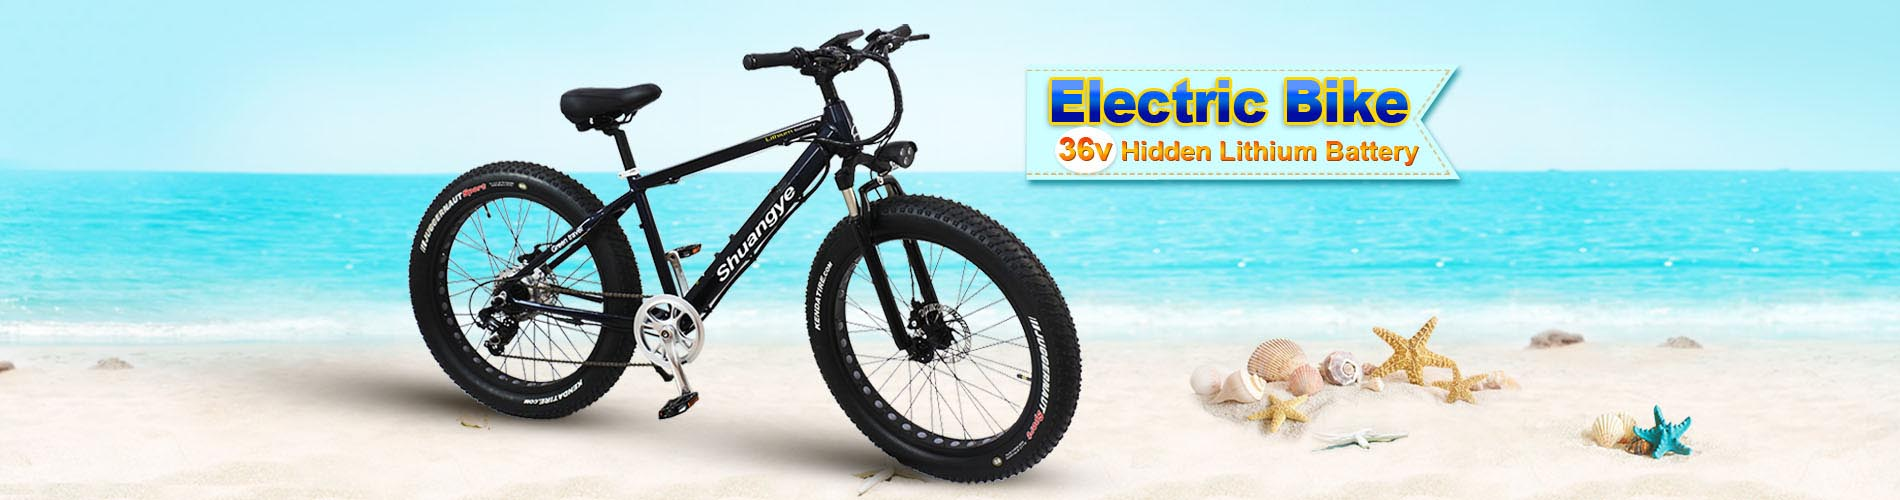 e citybike carbon steel folding frame